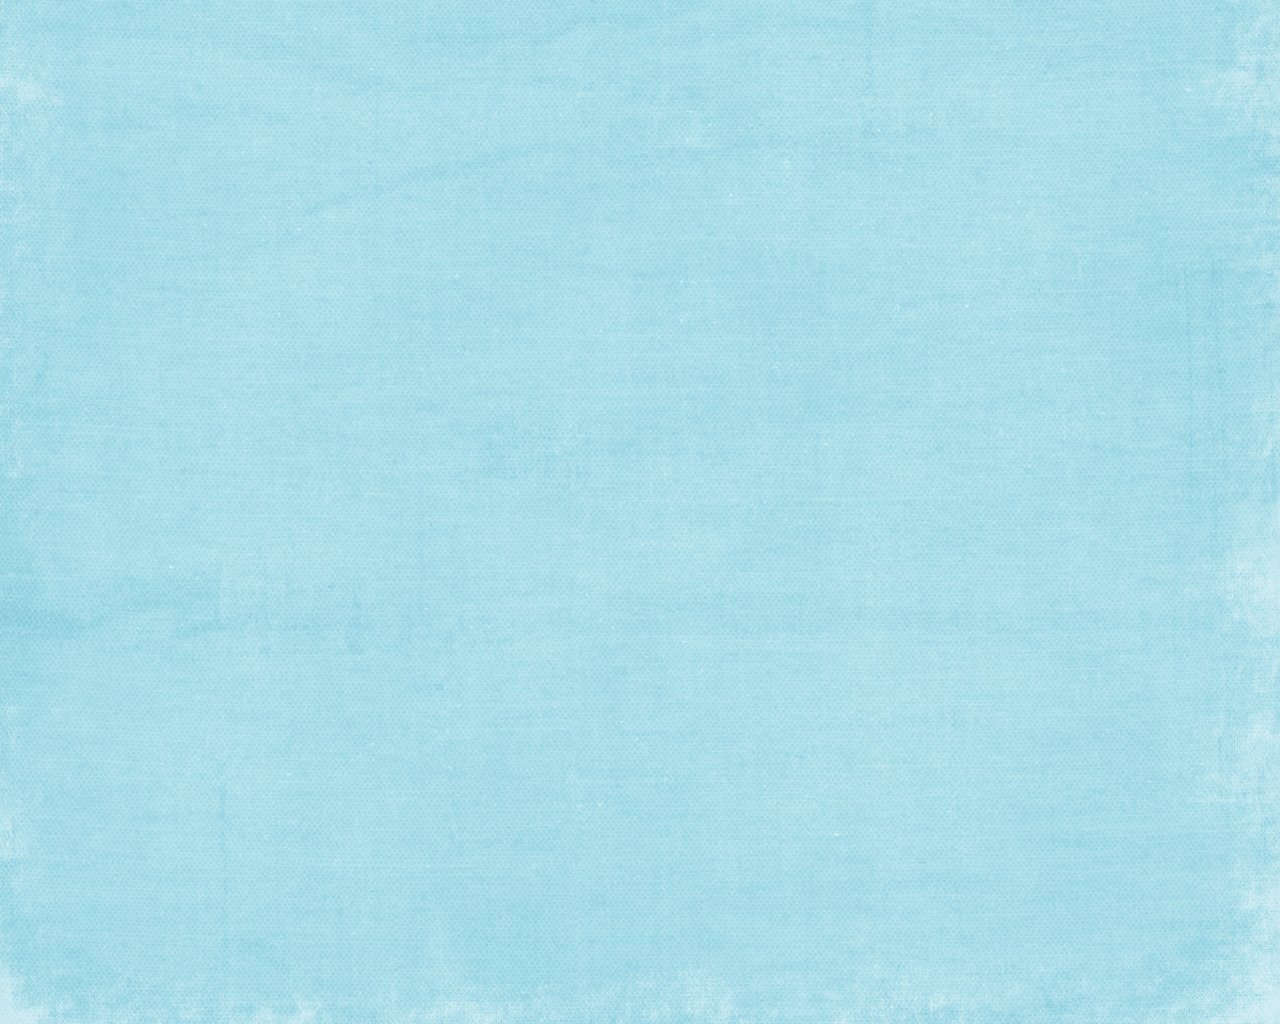 Gyrosigma light blue background 20288